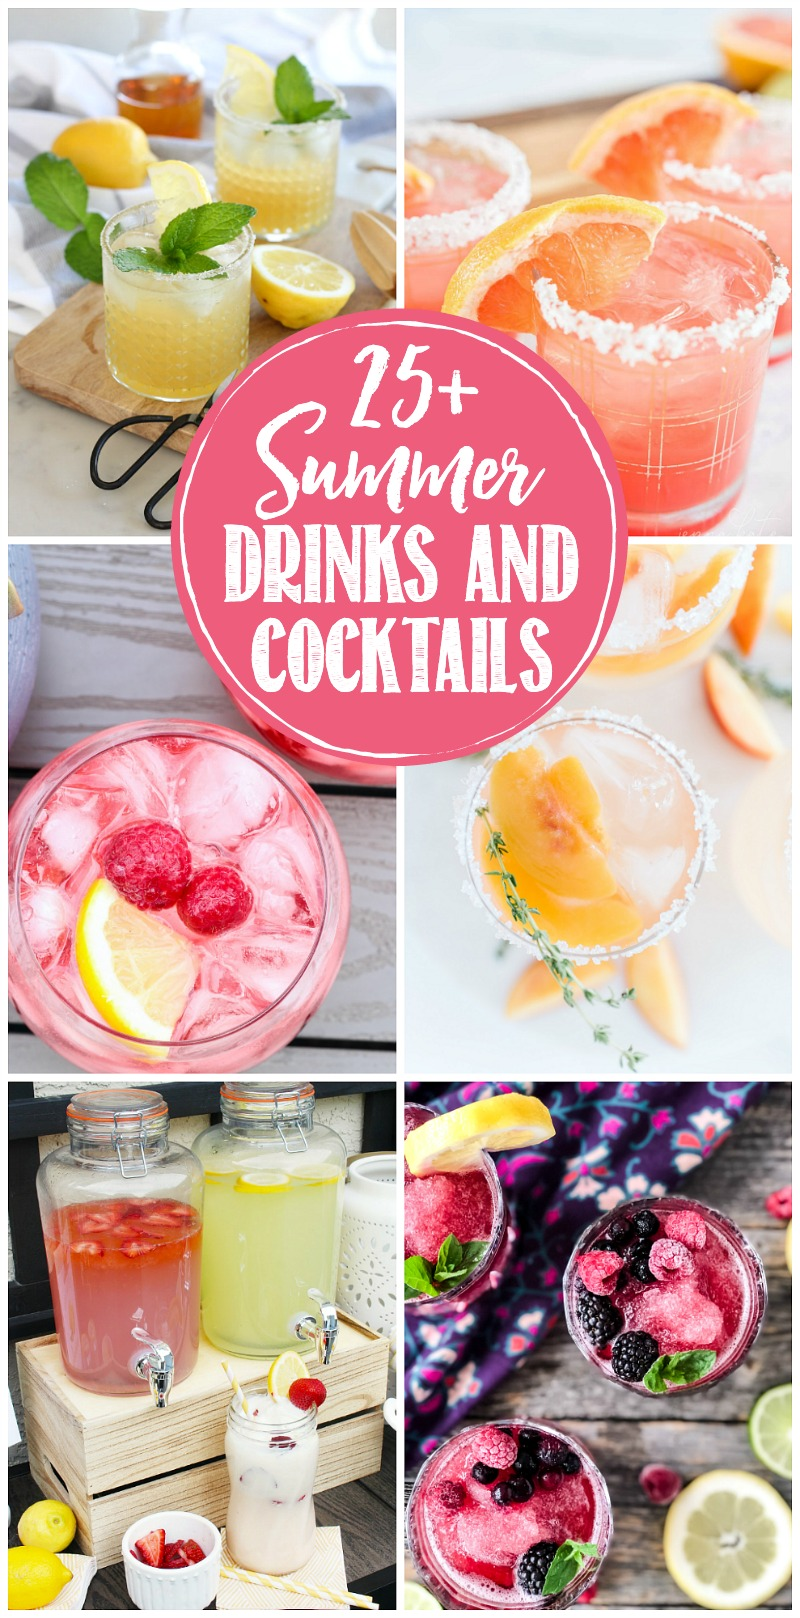 Collage of delicious summer drinks and cocktails.